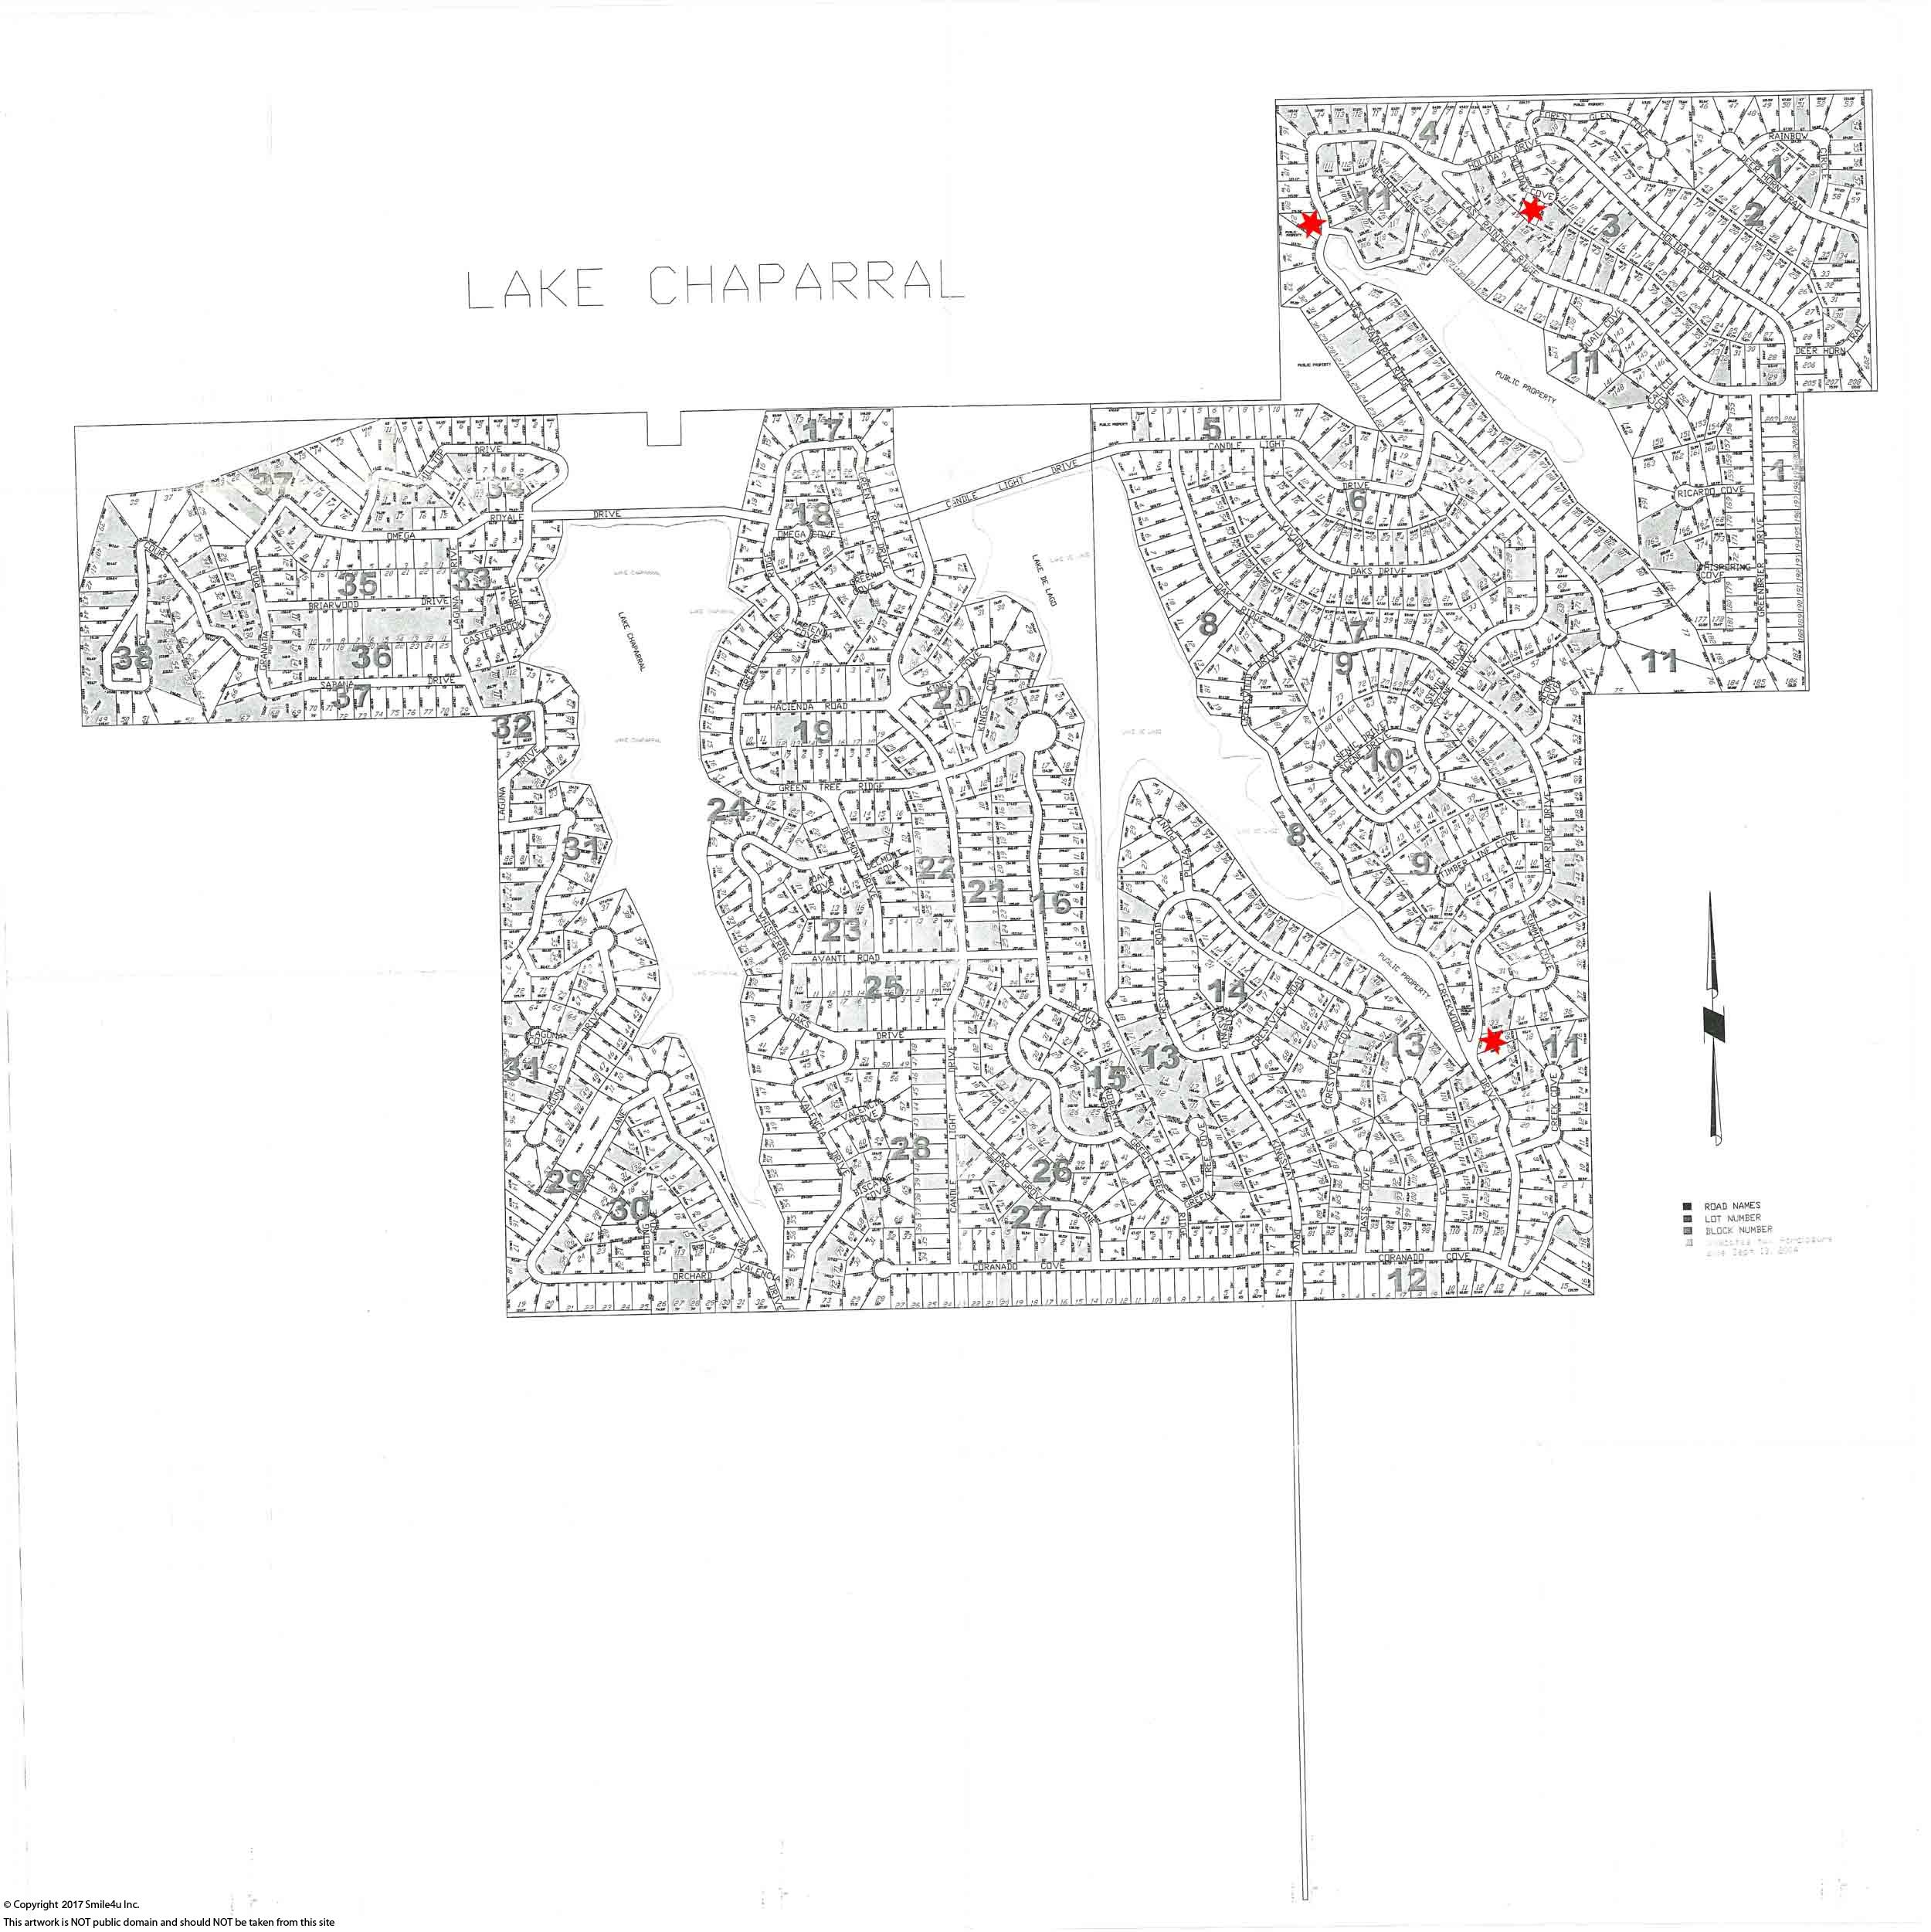 287253_watermarked_lake chaparral full subdivision map.jpg